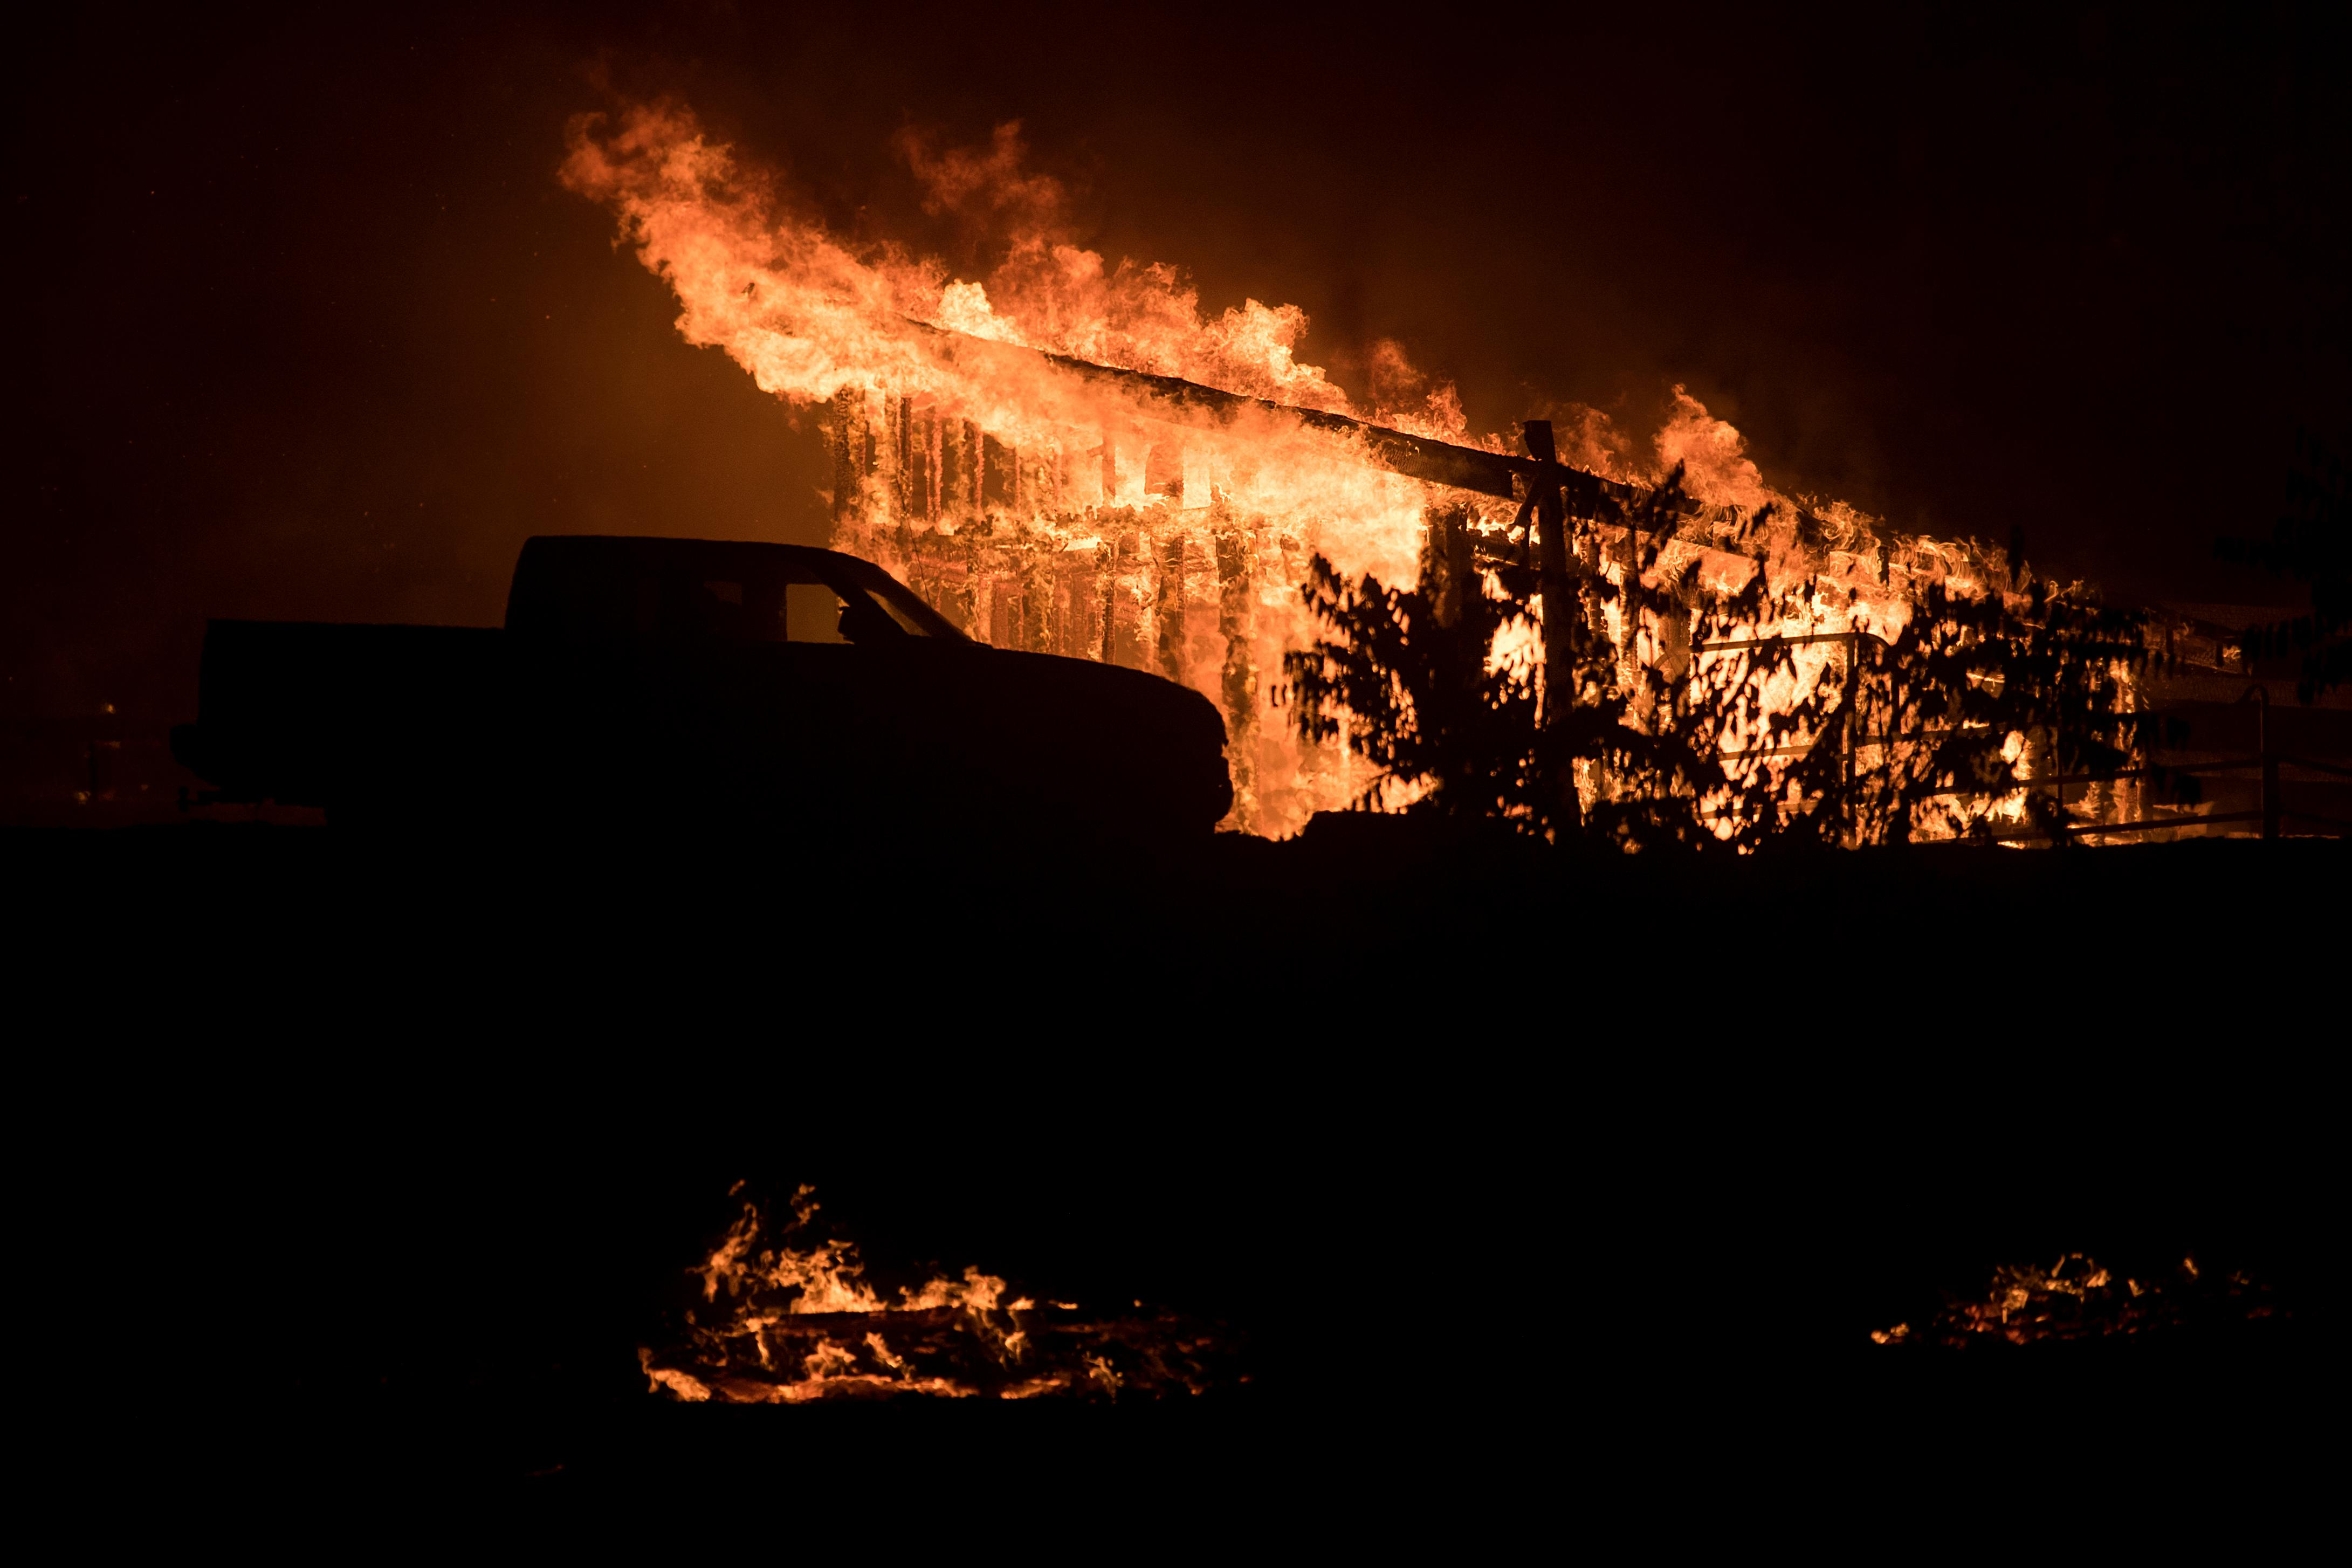 Flames consume a structure as a wildfire burns in Casitas Springs, Calif., on Tuesday, Dec. 5, 2017. Wind-driven fires tore through California communities Tuesday for the second time in two months, leaving hundreds of homes feared lost and uprooting tens of thousands of people. (AP Photo/Noah Berger)